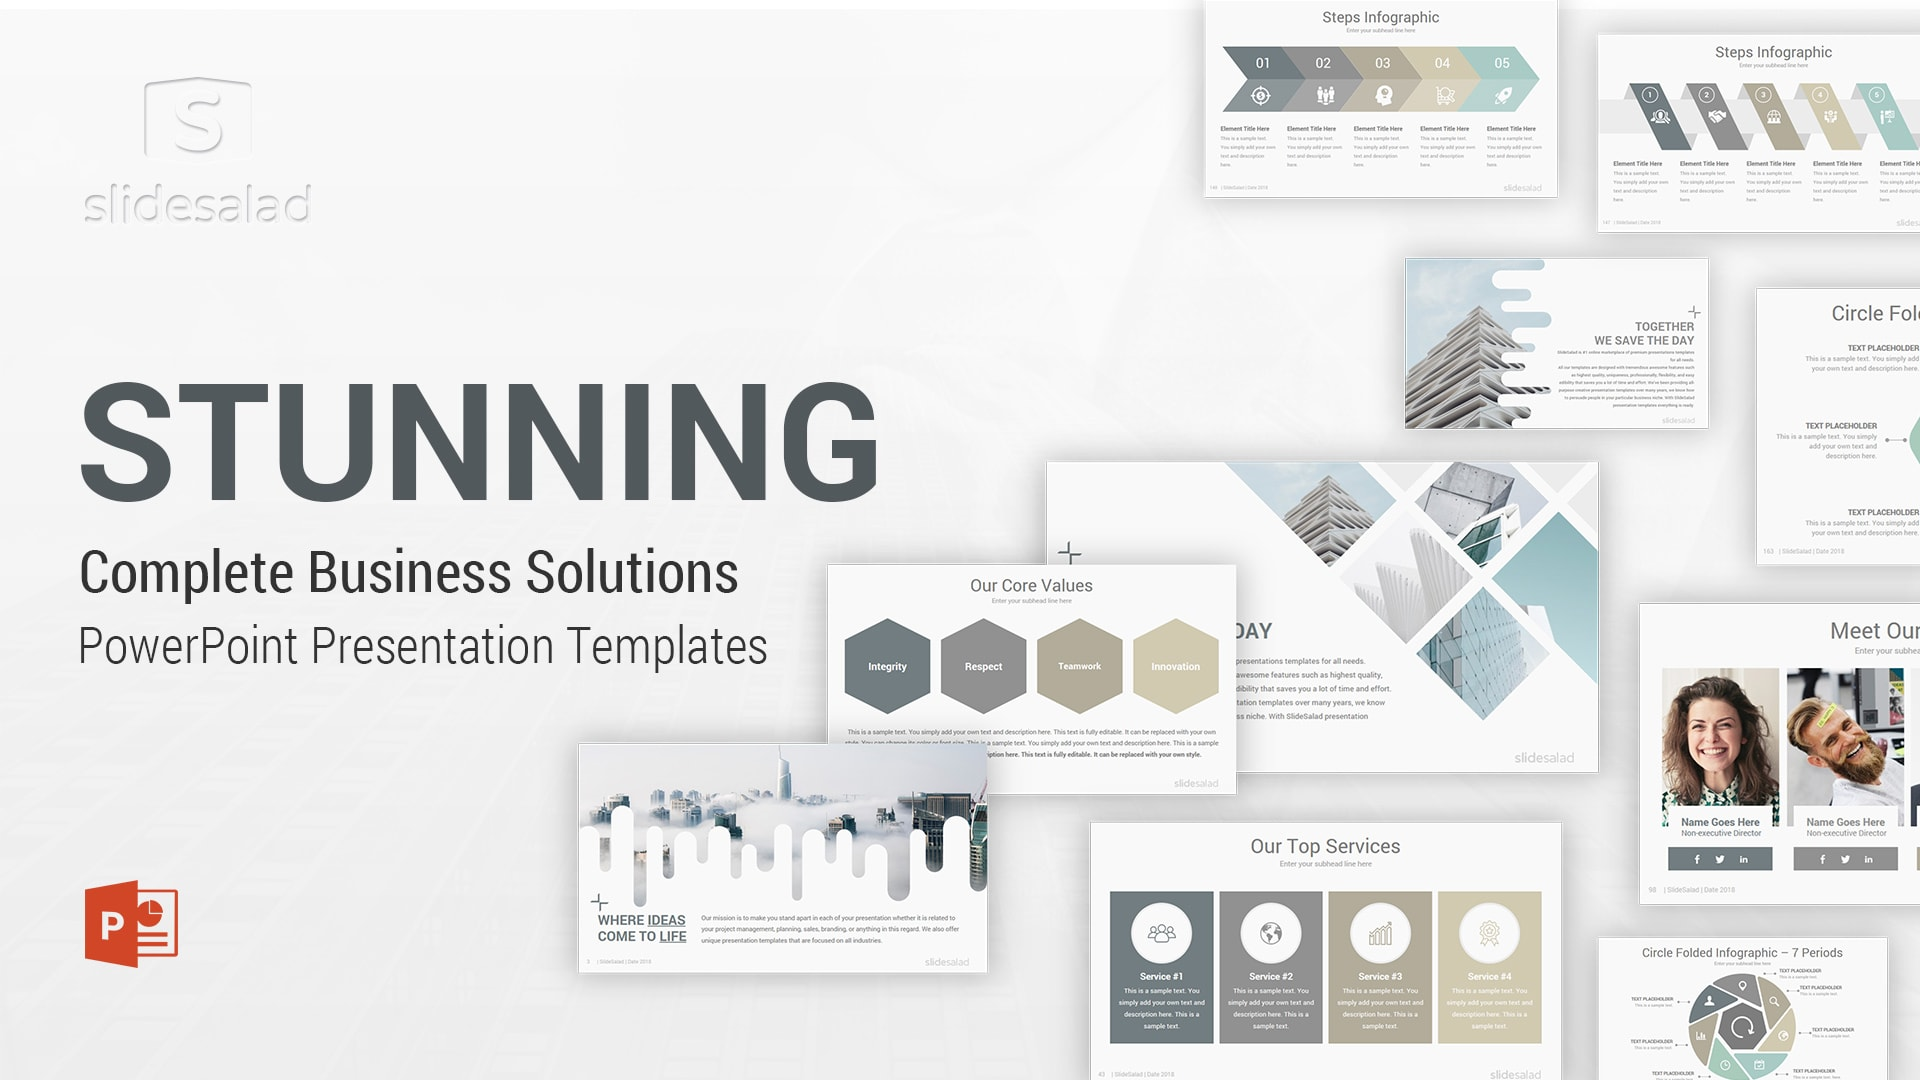 Stunning PowerPoint Template Multipurpose Designs – Animated PPT Presentation Set to Download